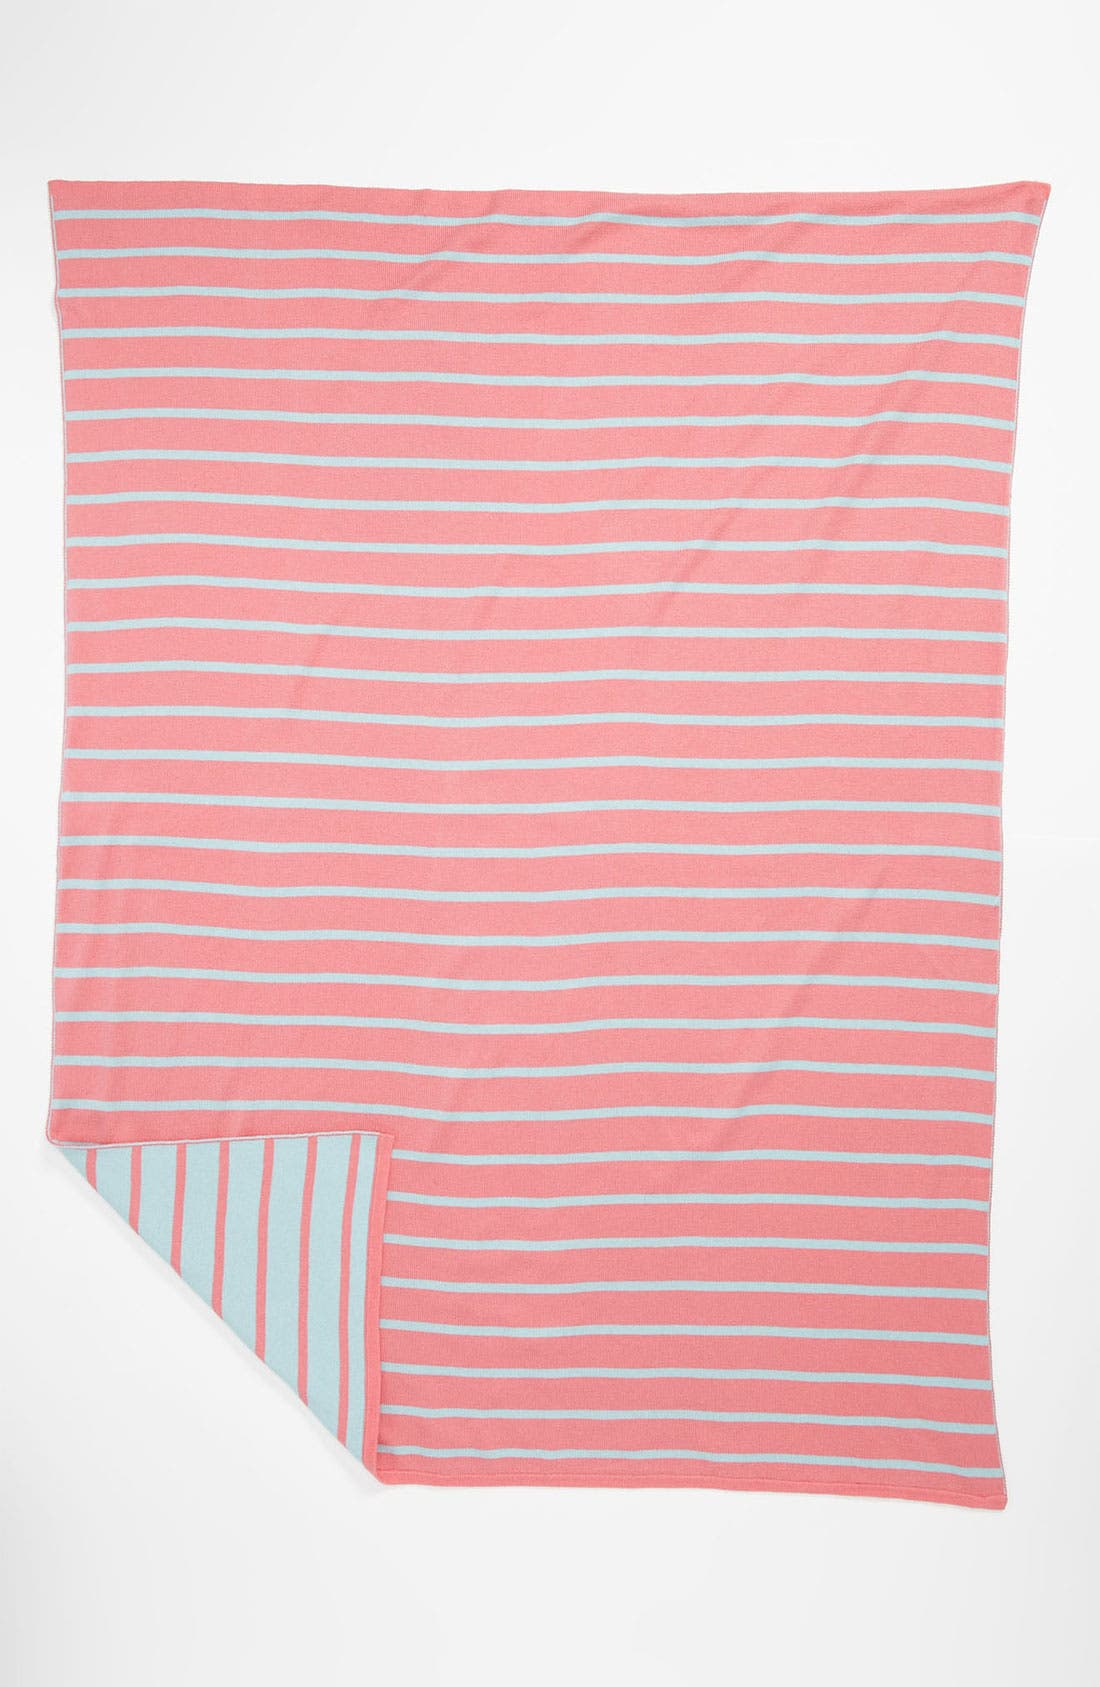 Main Image - Stem Baby 'Bright Stripe' Organic Cotton Blanket